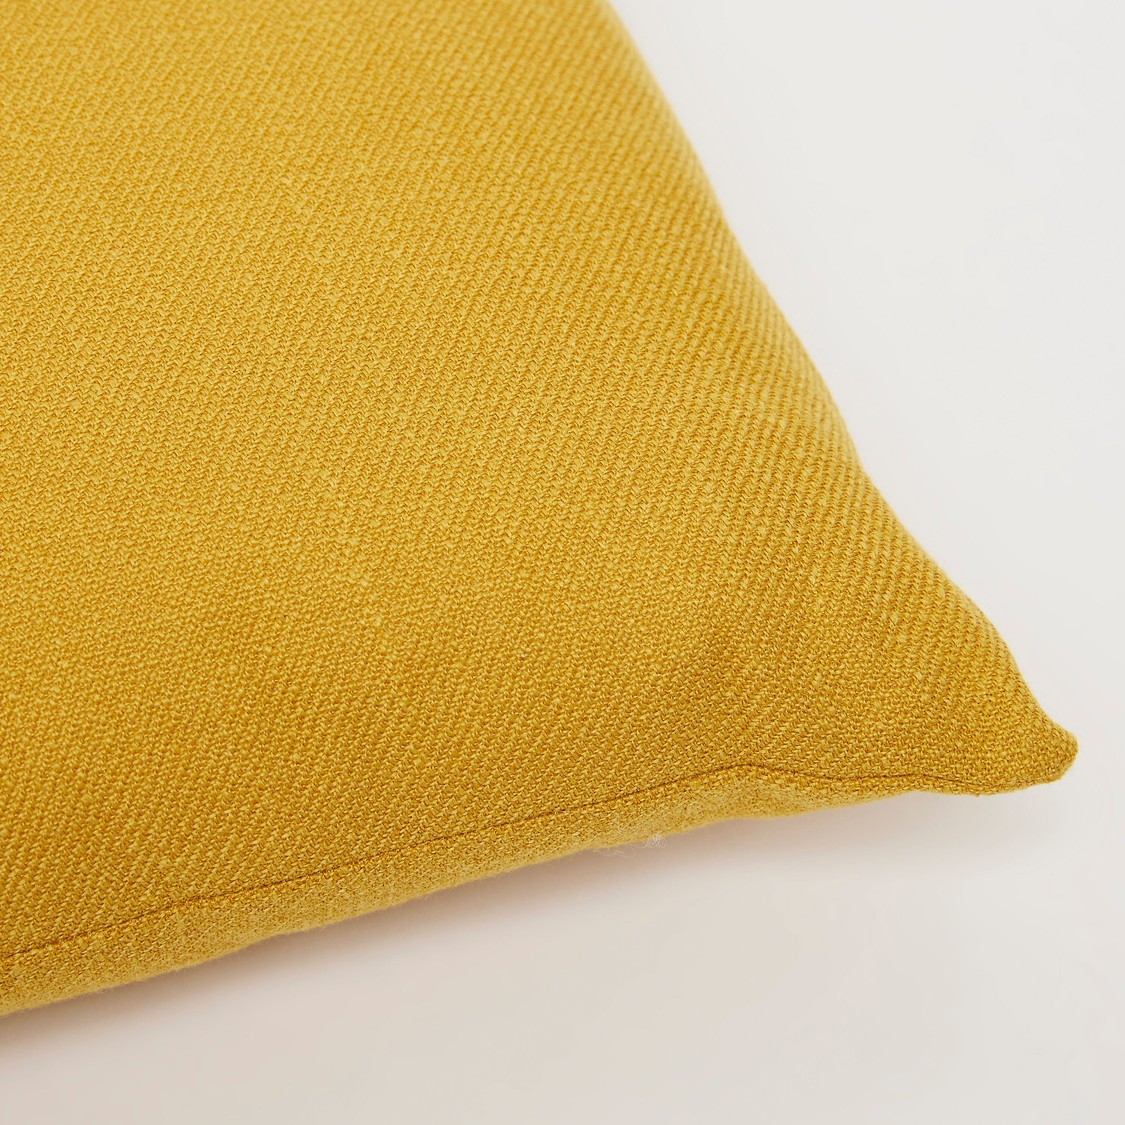 Solid Square Filled Cushion - 43x43 cms